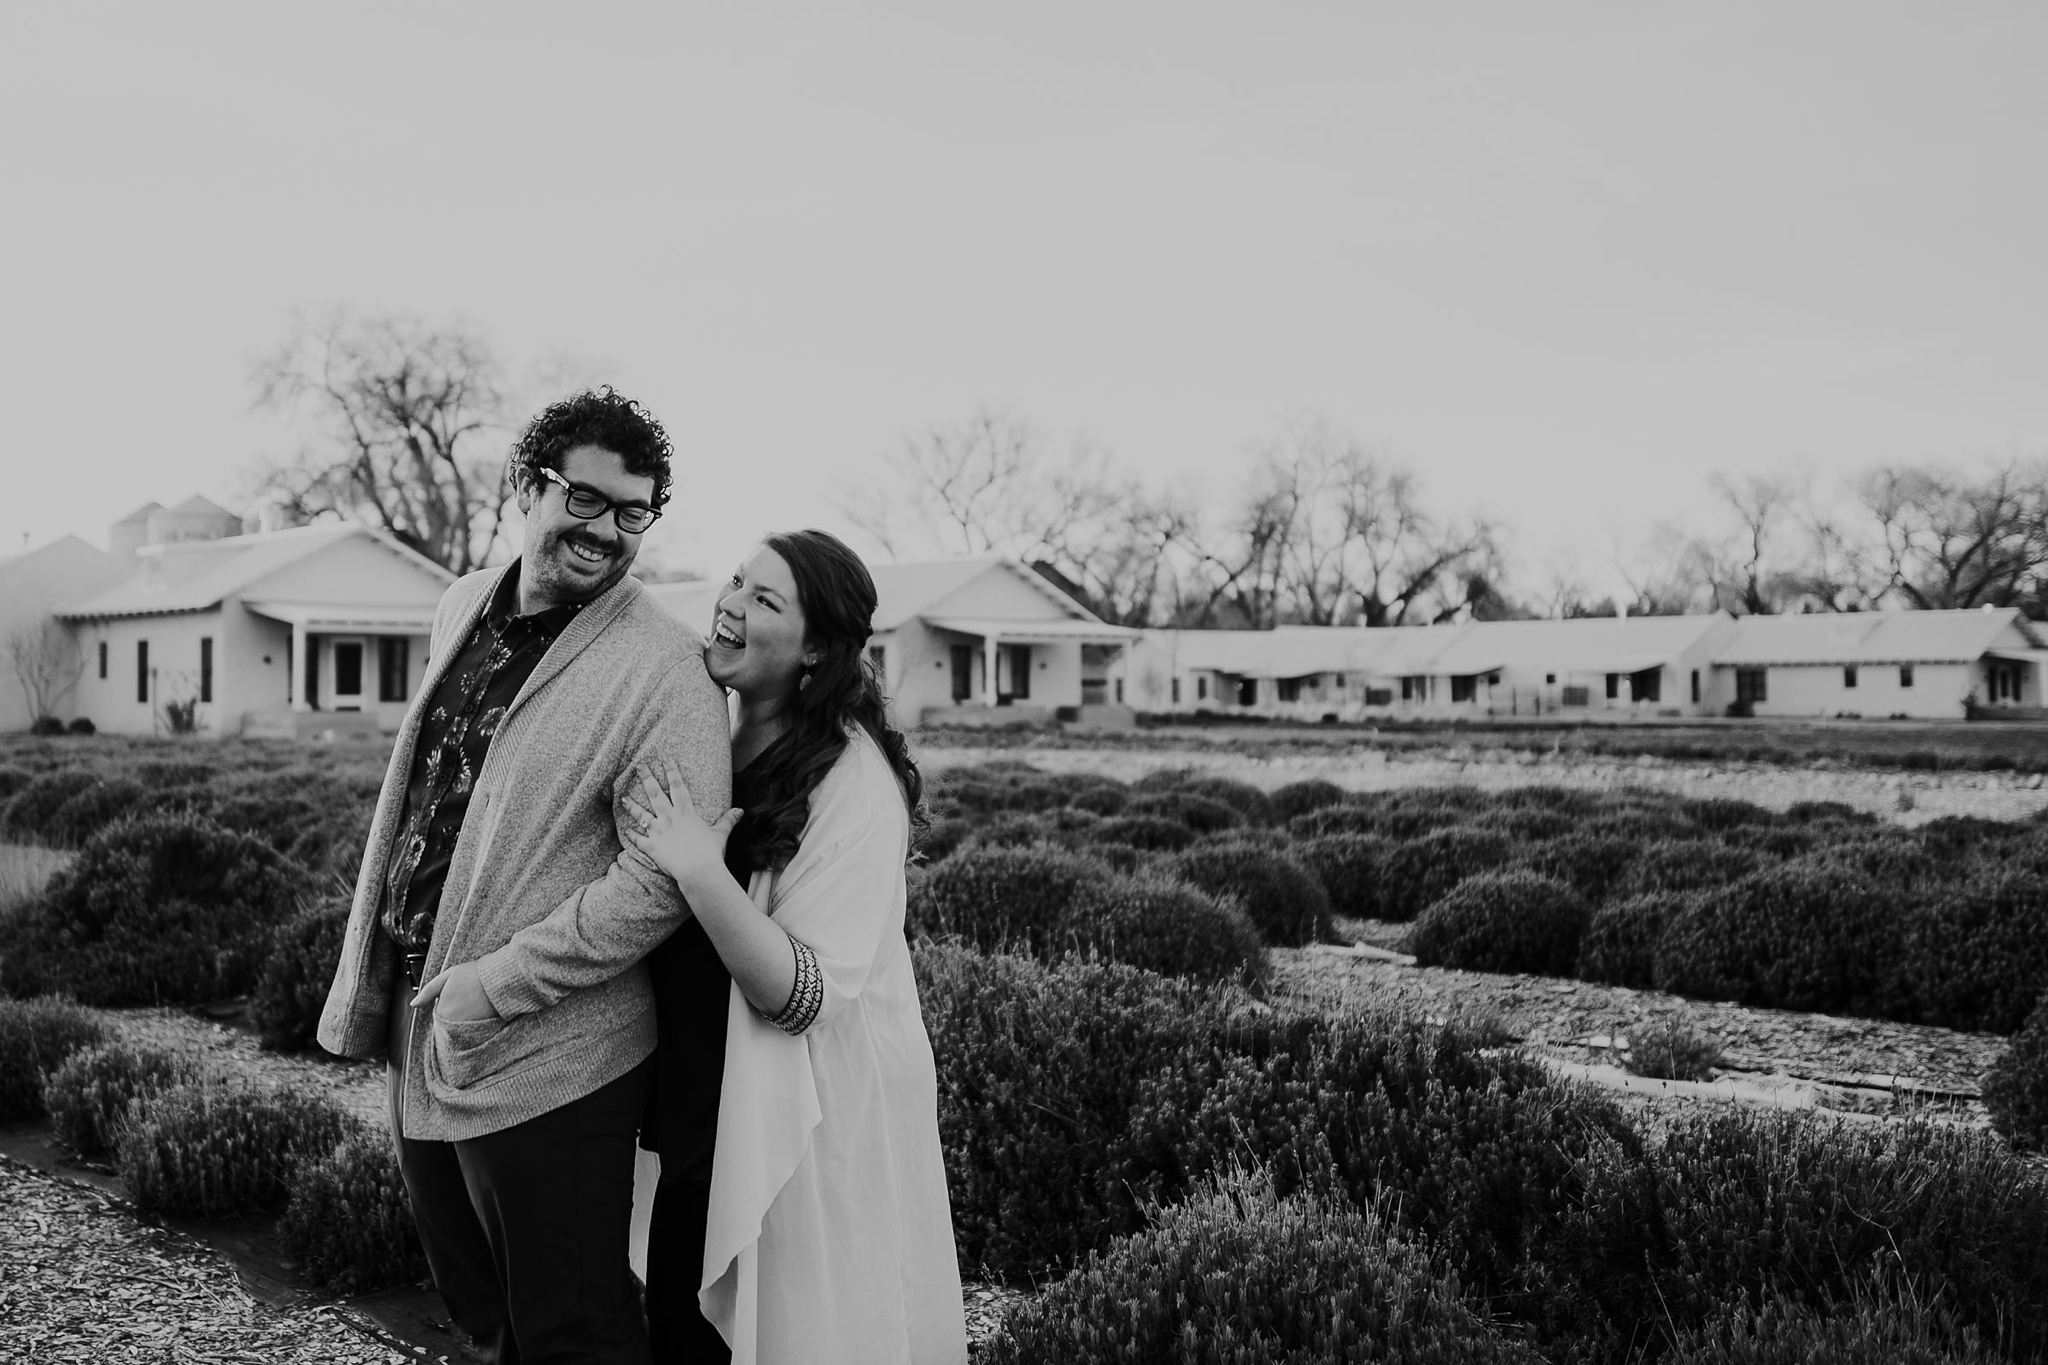 Alicia+lucia+photography+-+albuquerque+wedding+photographer+-+santa+fe+wedding+photography+-+new+mexico+wedding+photographer+-+new+mexico+engagement+-+los+poblanos+engagement+-+spring+engagement_0007.jpg